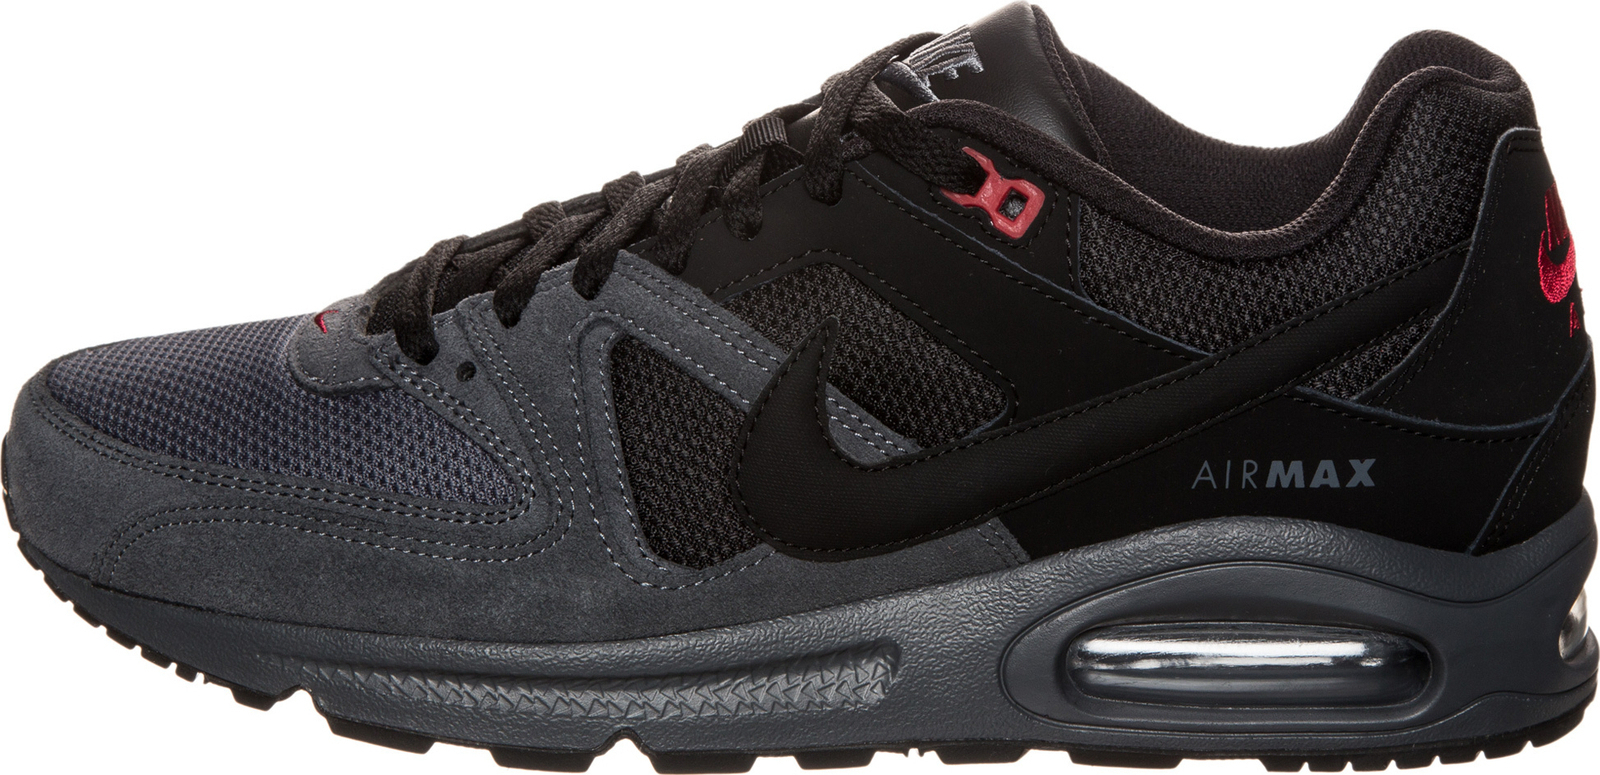 800f465b14 ... 2015 skroutz 8ef11 d4adf real nike air max skroutz nike air max command  629993 024 e0221 4c59e ...